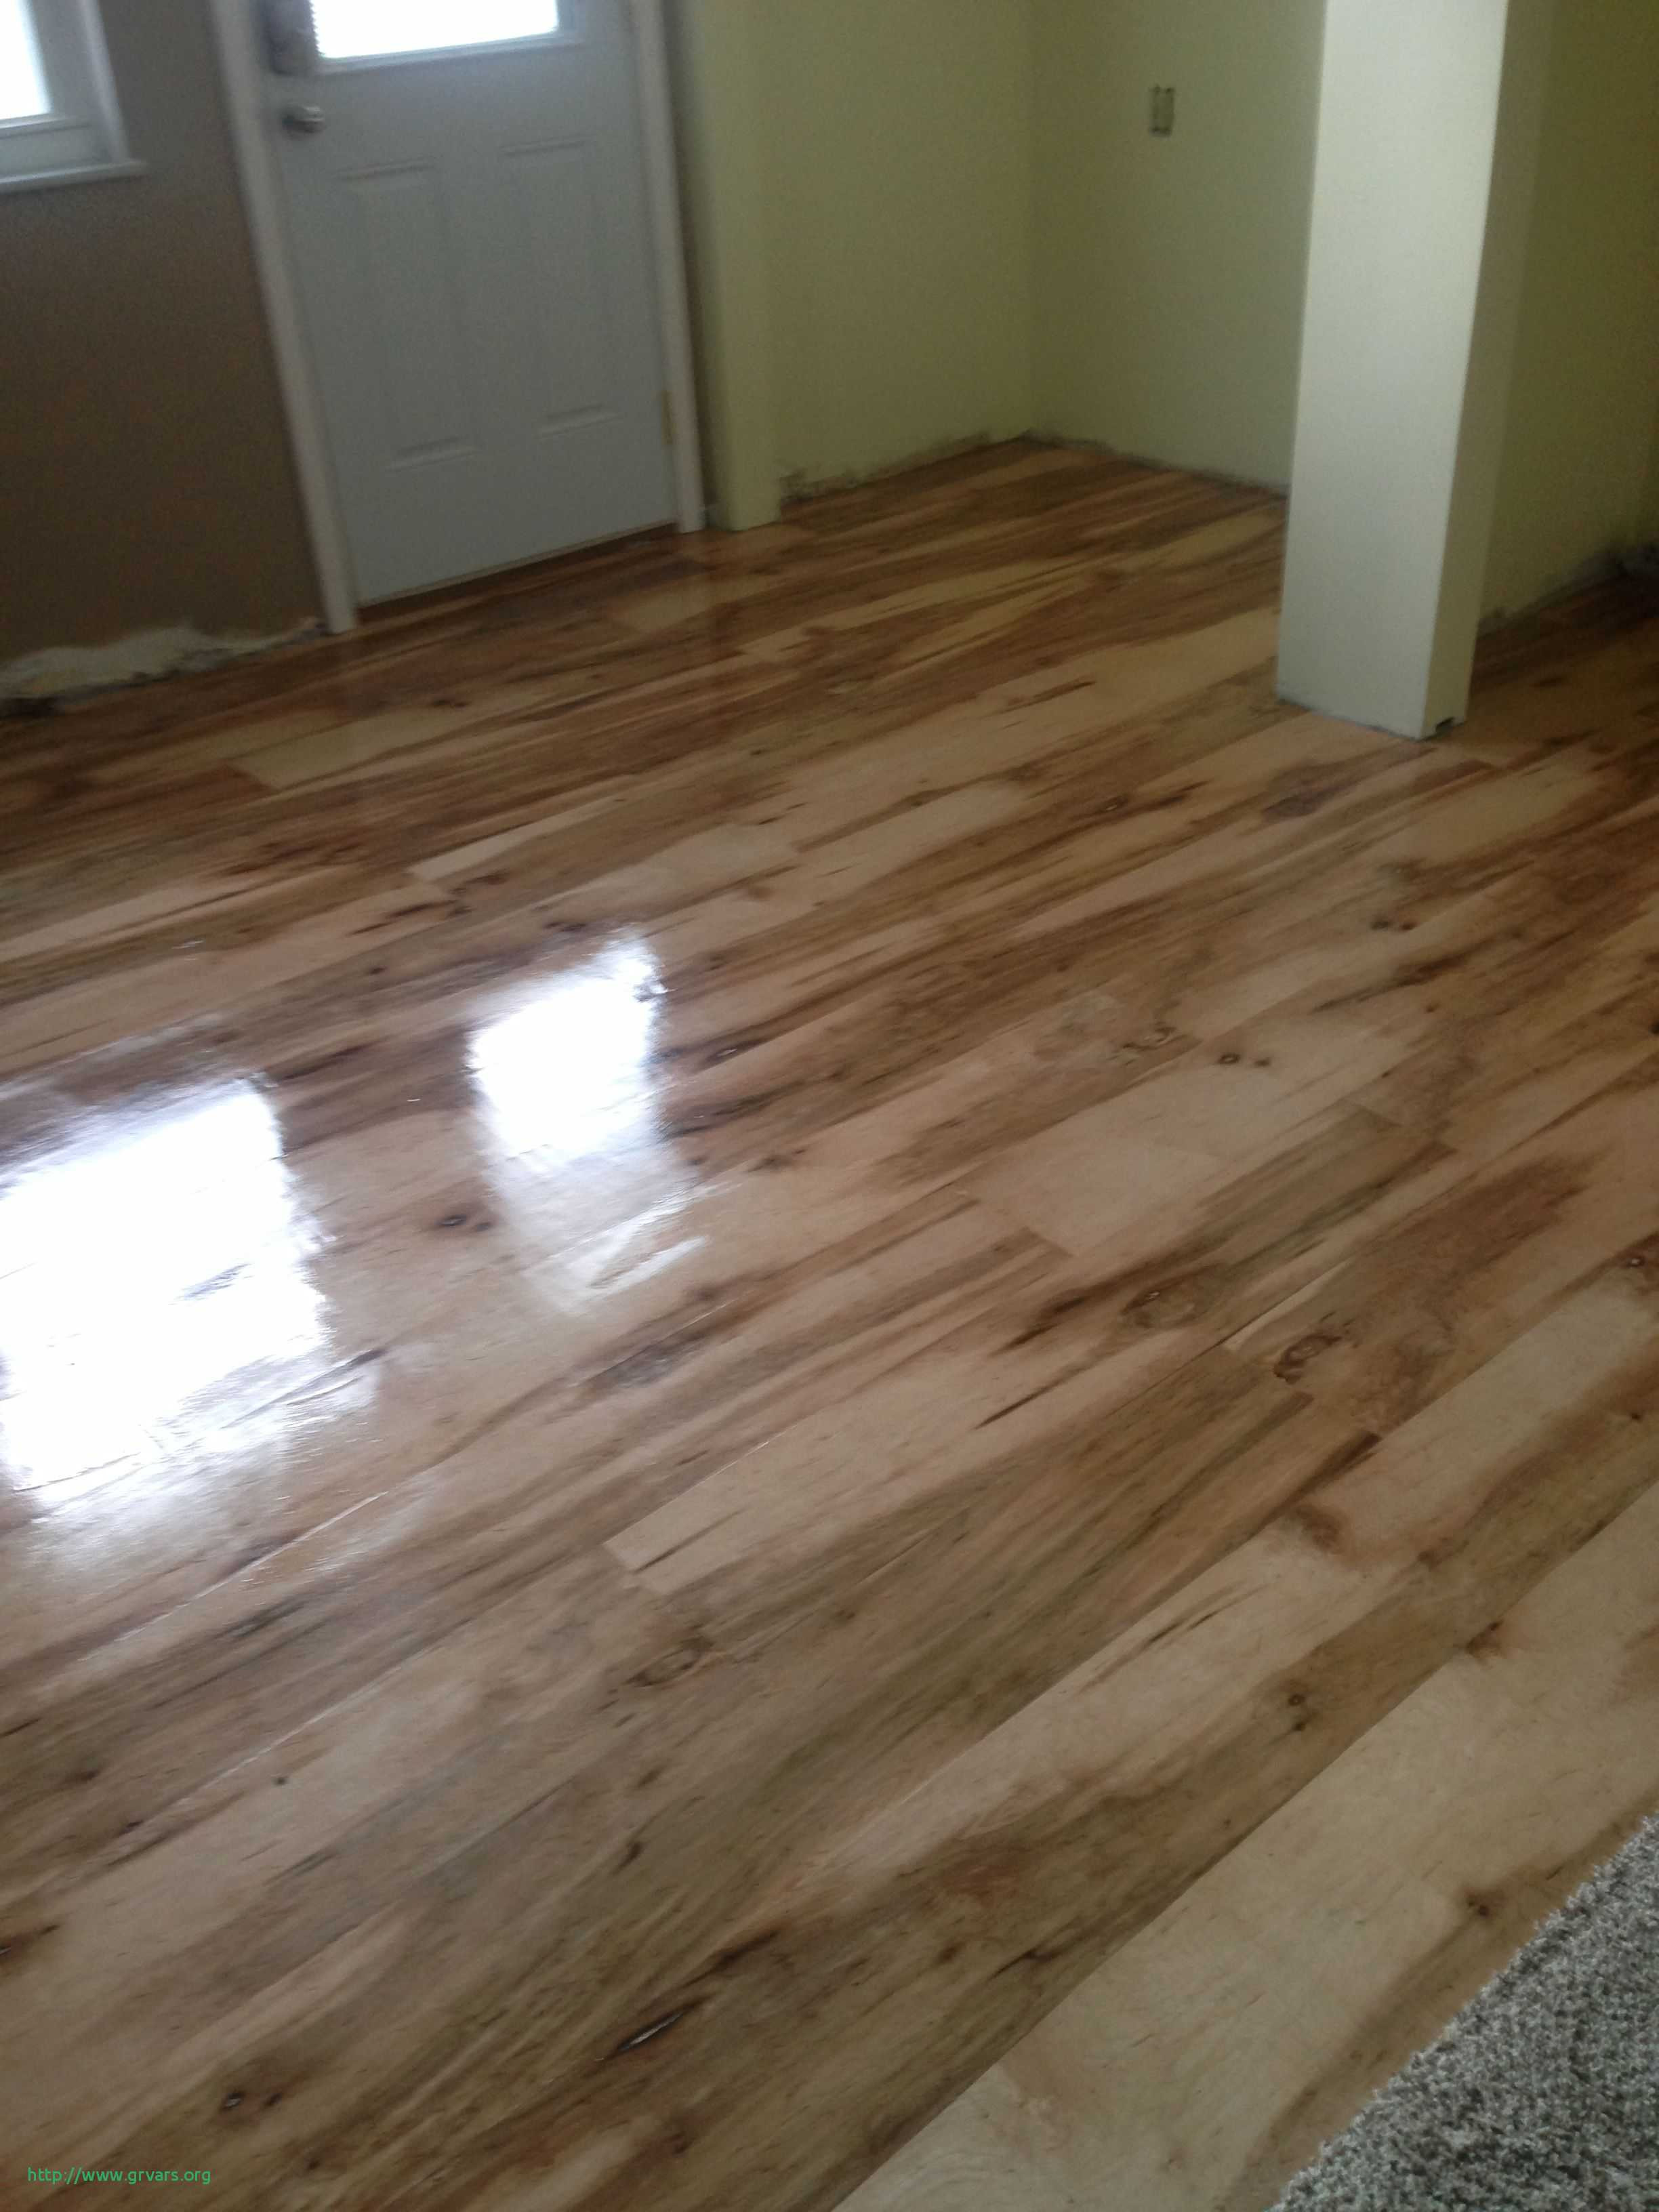 hardwood flooring greenville sc of 21 a‰lagant flooring stores in st louis mo ideas blog with flooring stores in st louis mo impressionnant breathtaking discount hardwood flooring 7 how do you clean